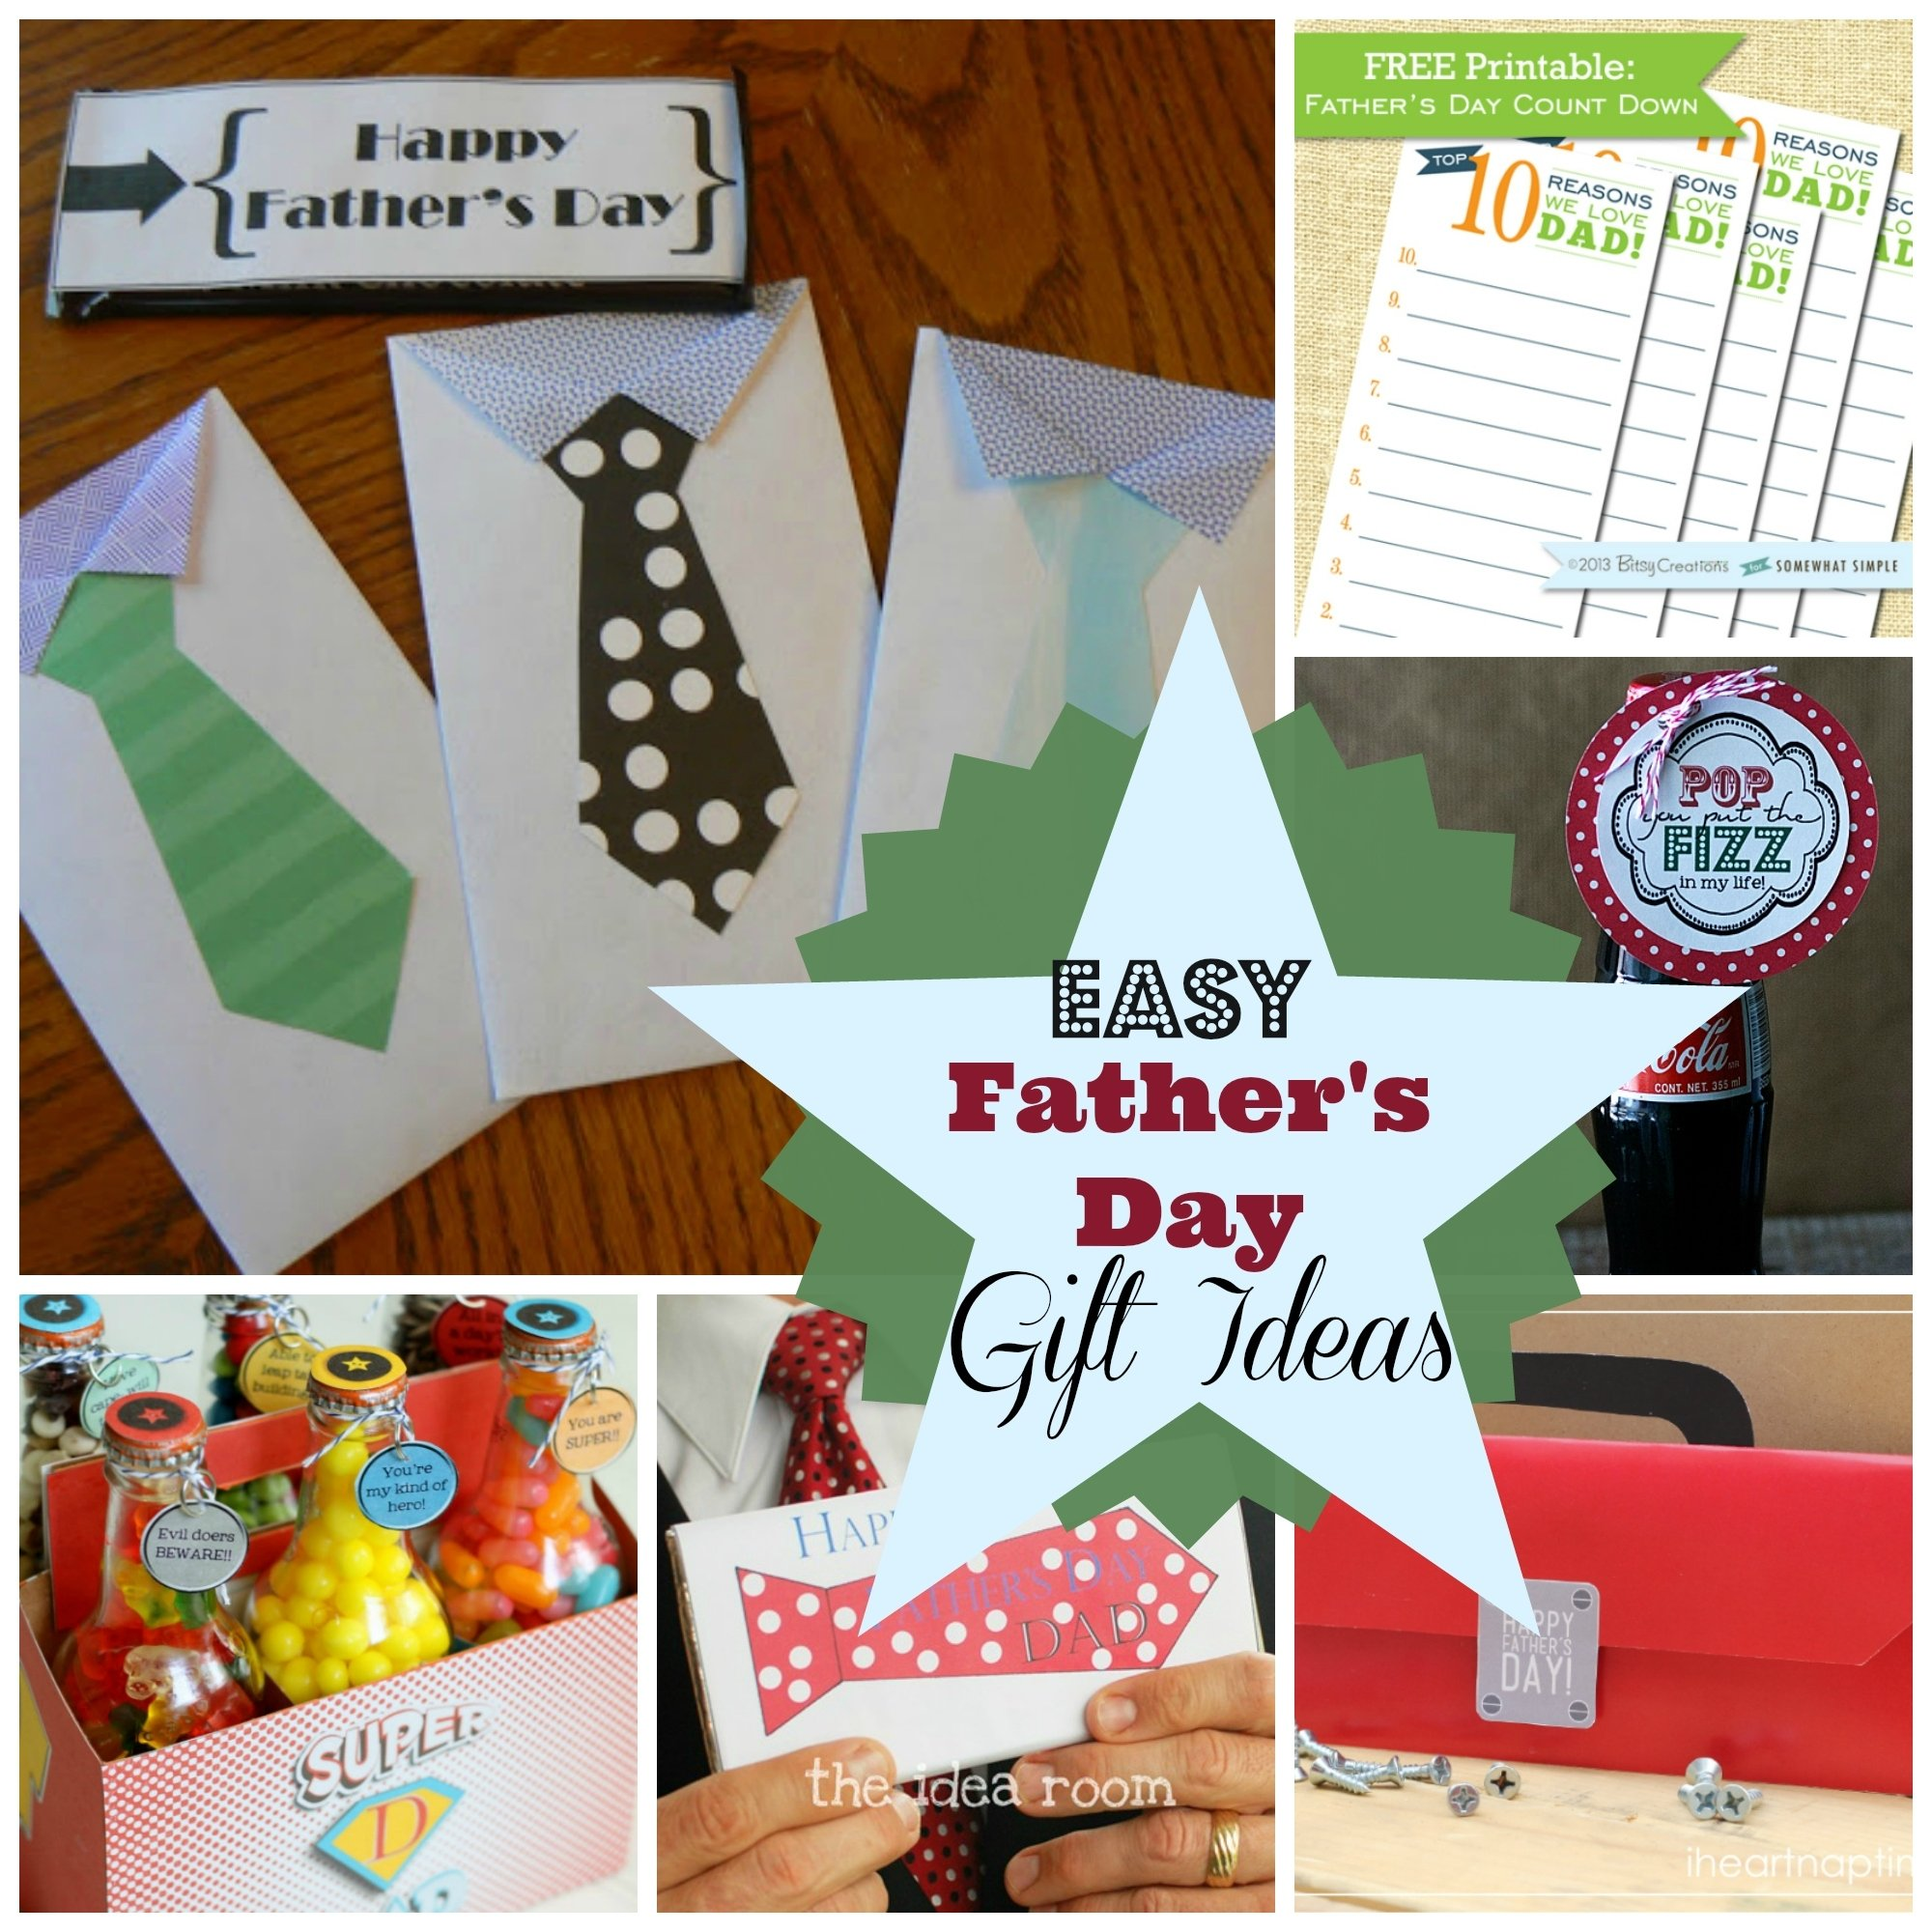 10 Great Gift Ideas For Fathers Day diy fathers day gift ideas 4 2020